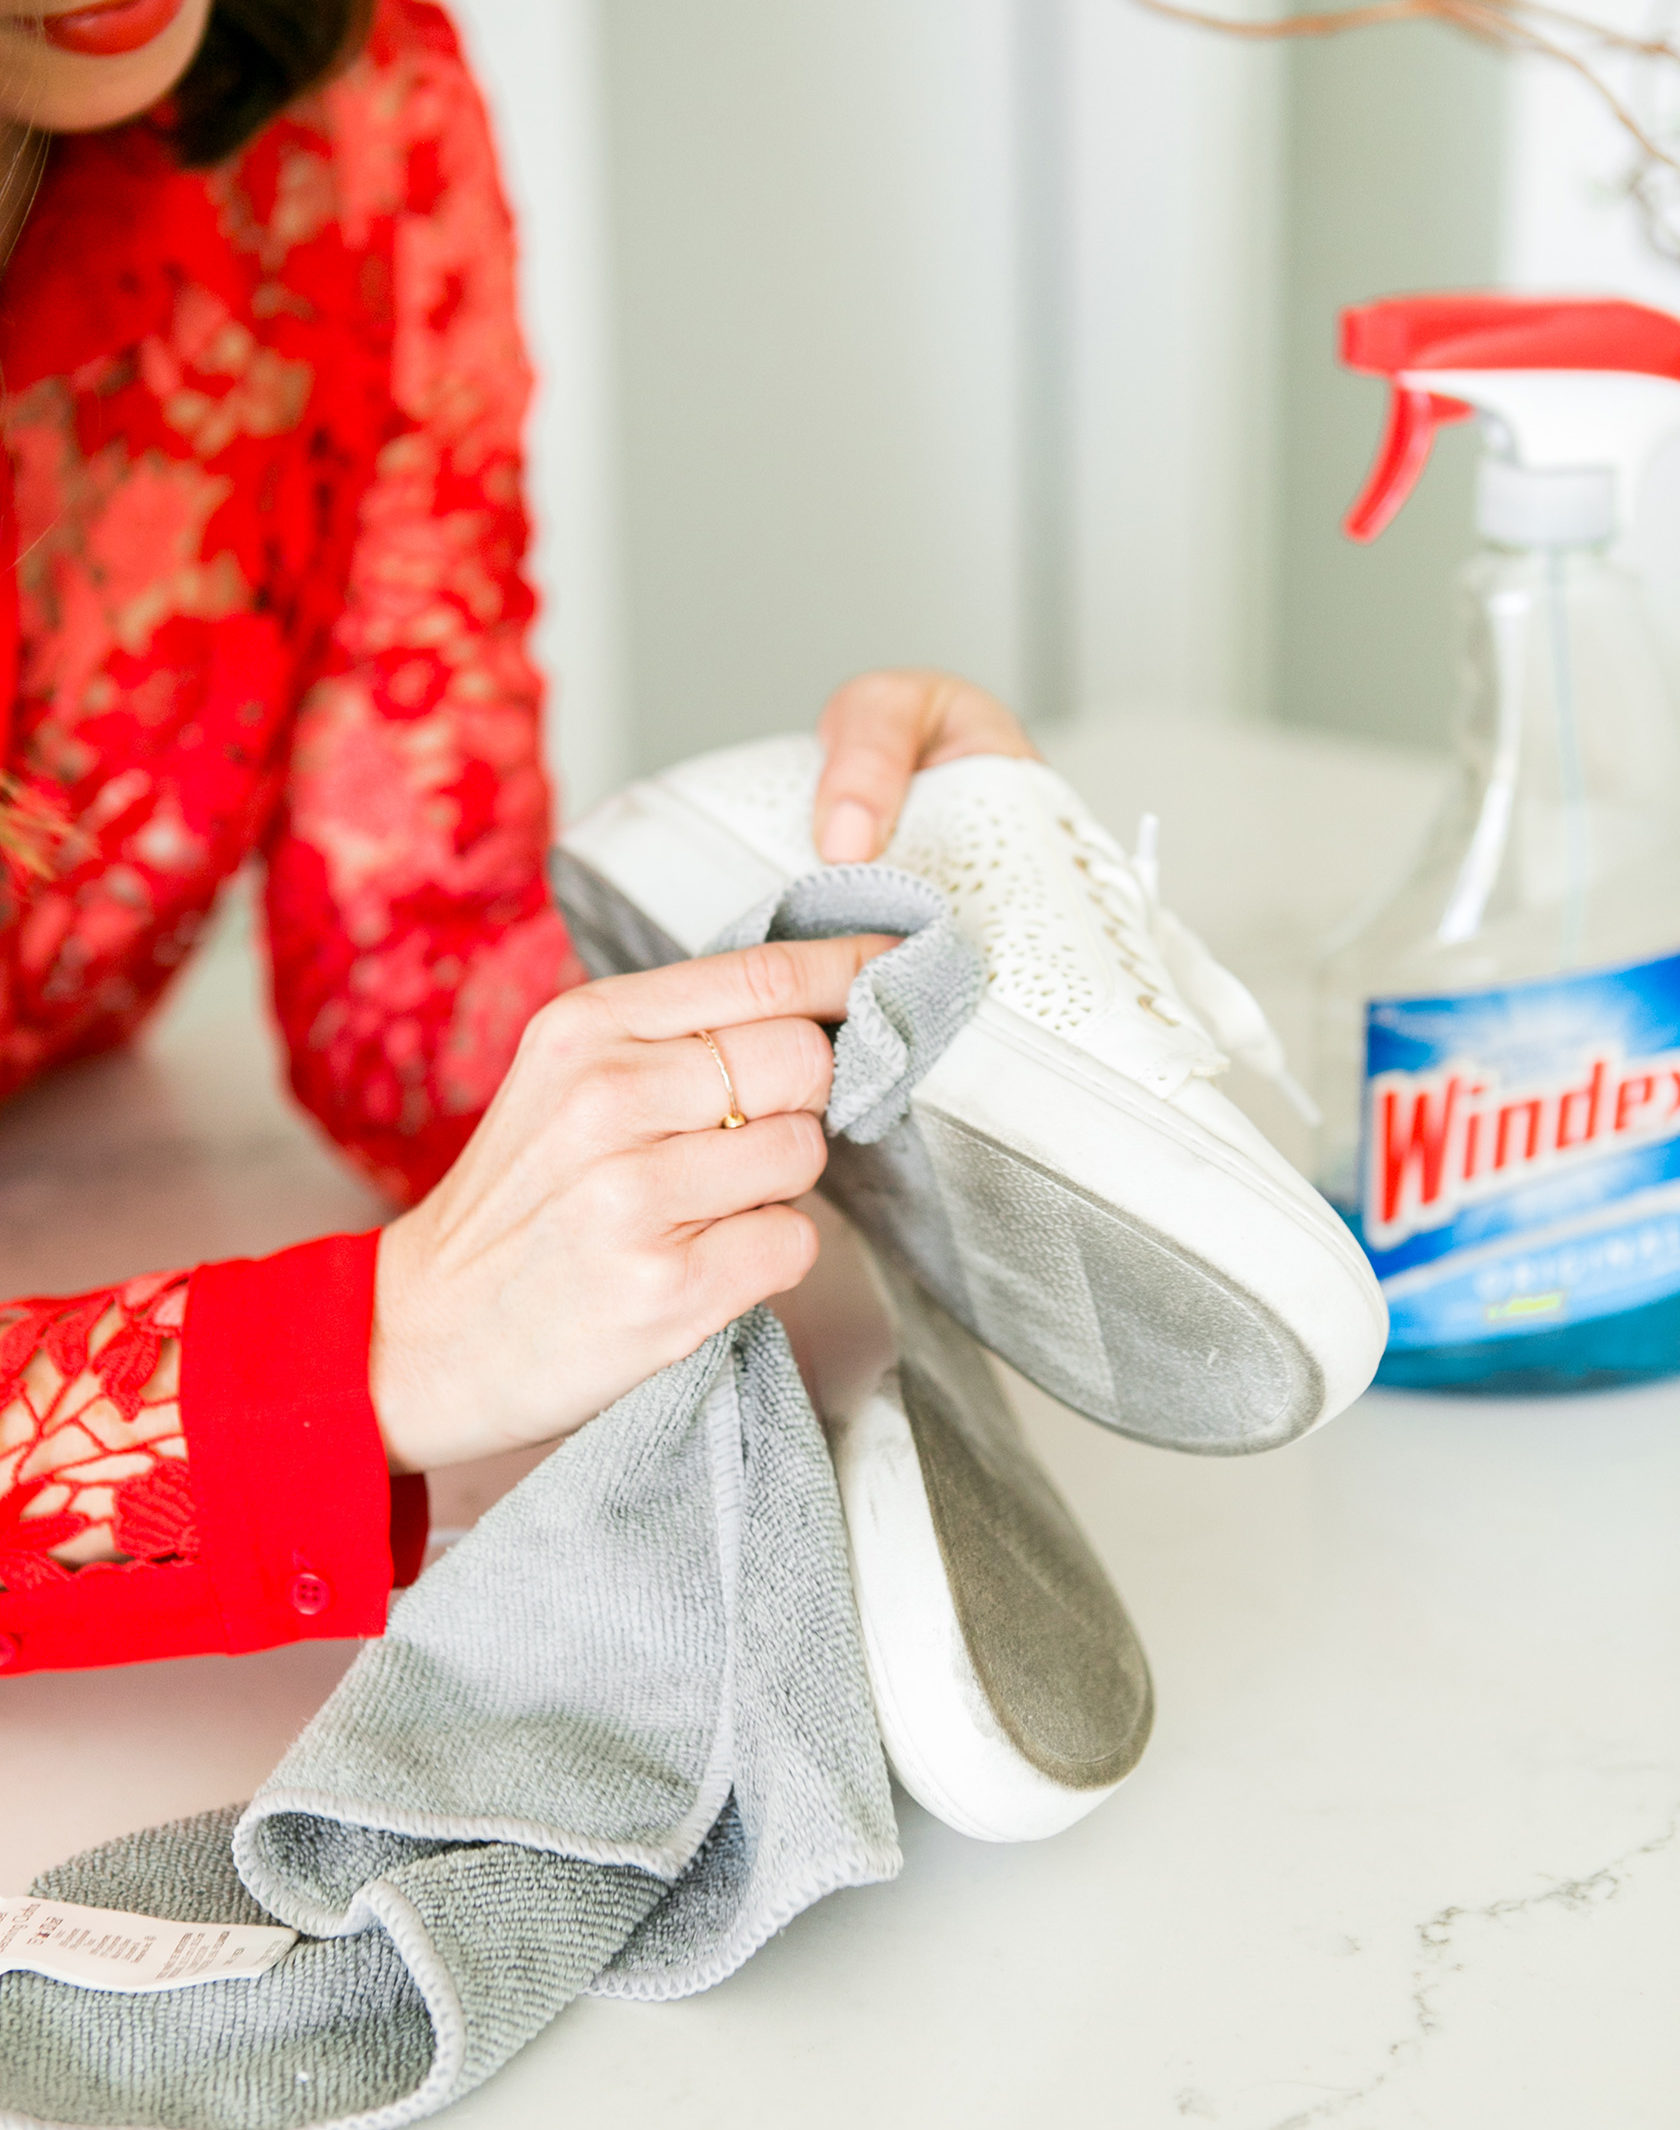 Sydne Style shares cleaning hacks for how to clean white sneakers